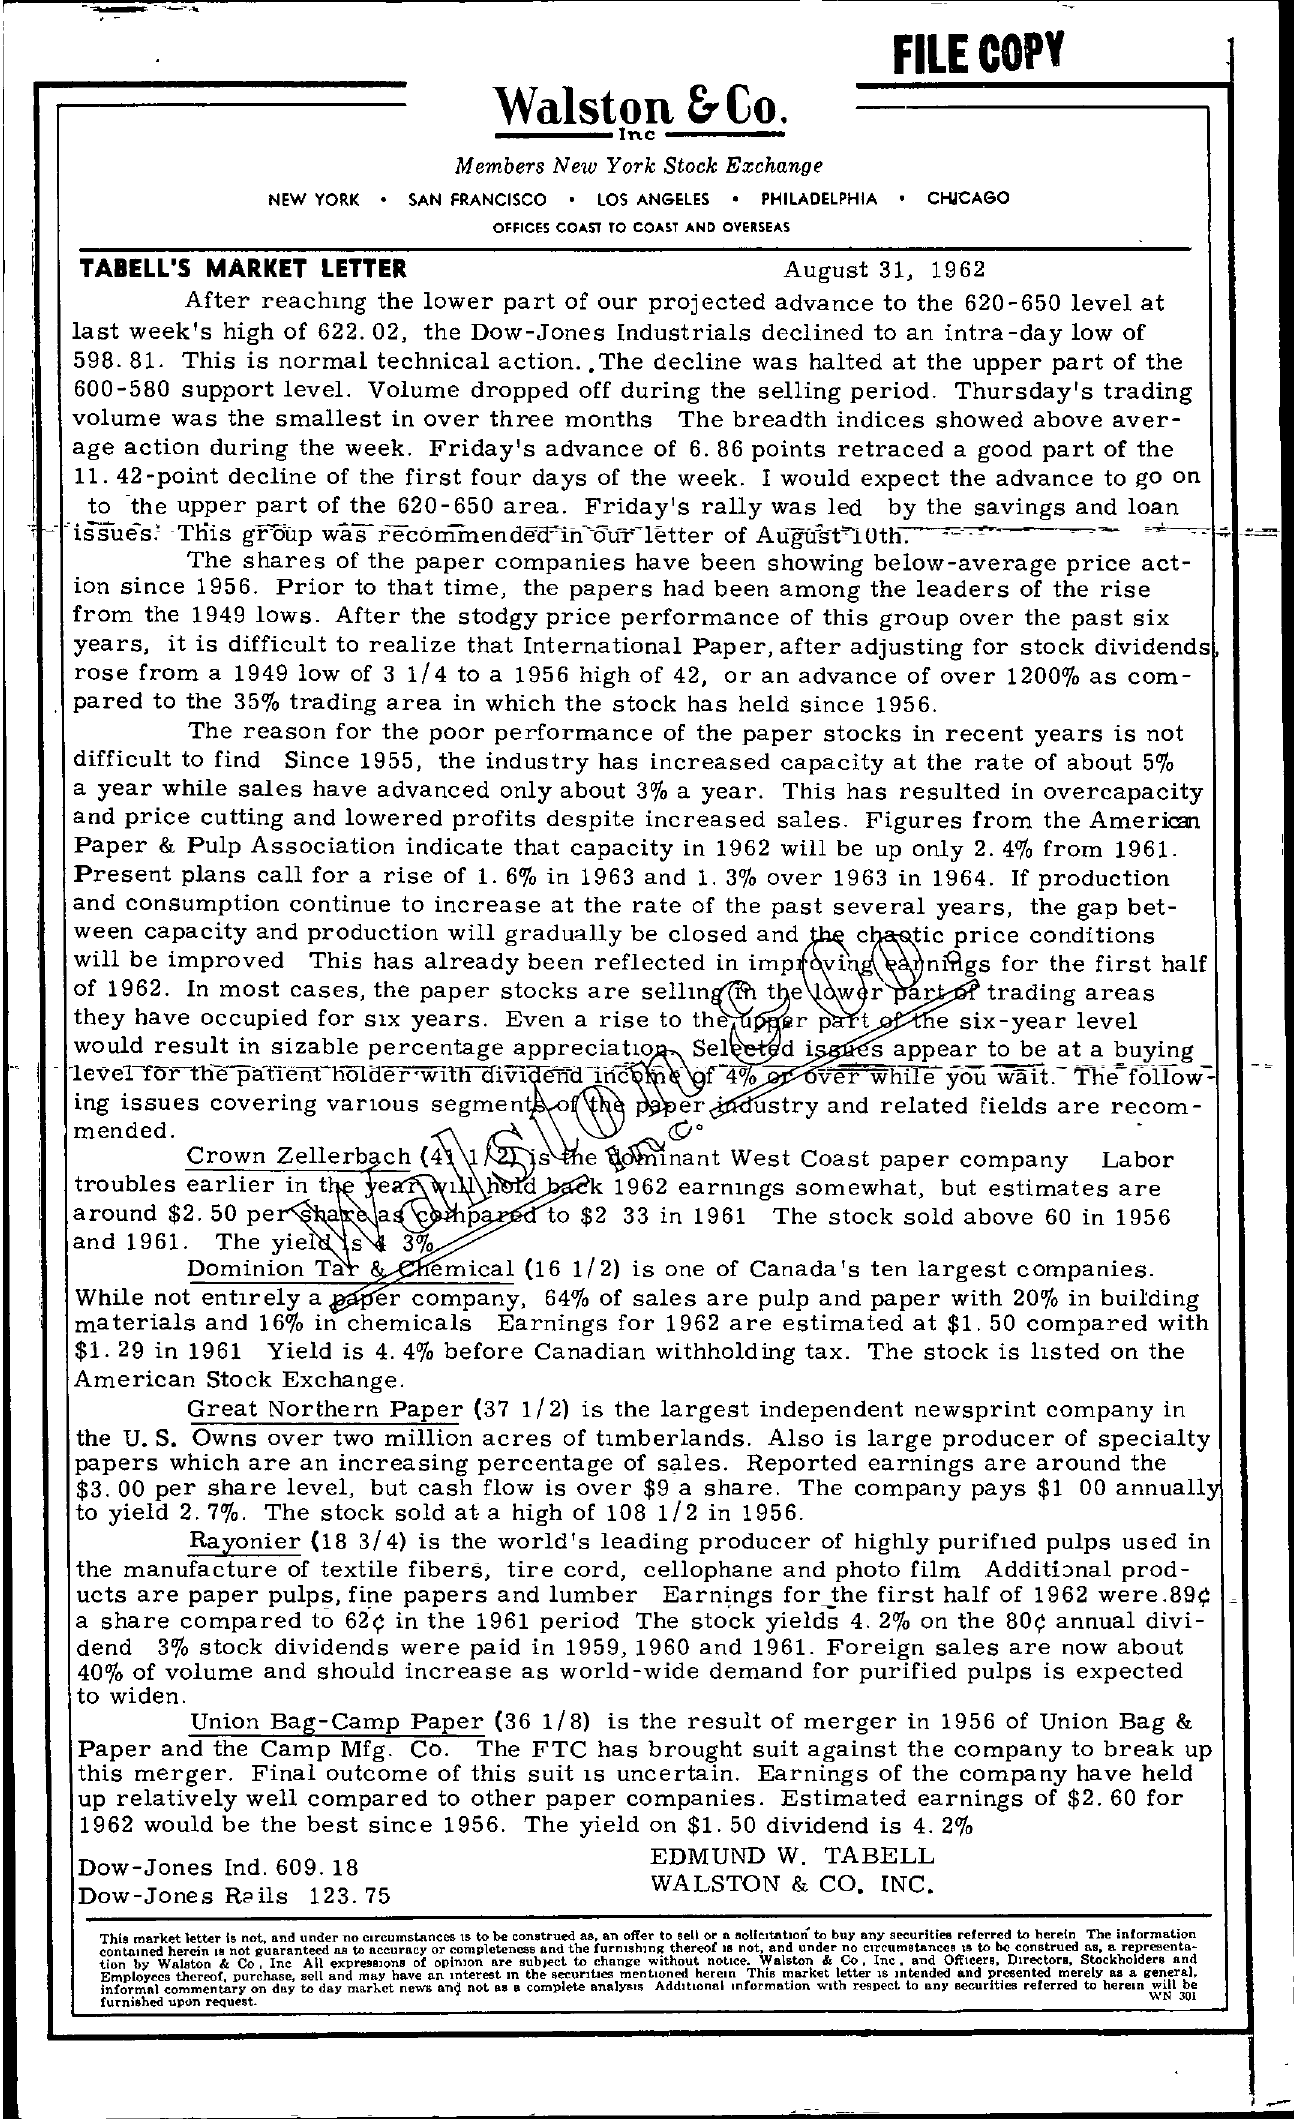 Tabell's Market Letter - August 31, 1962